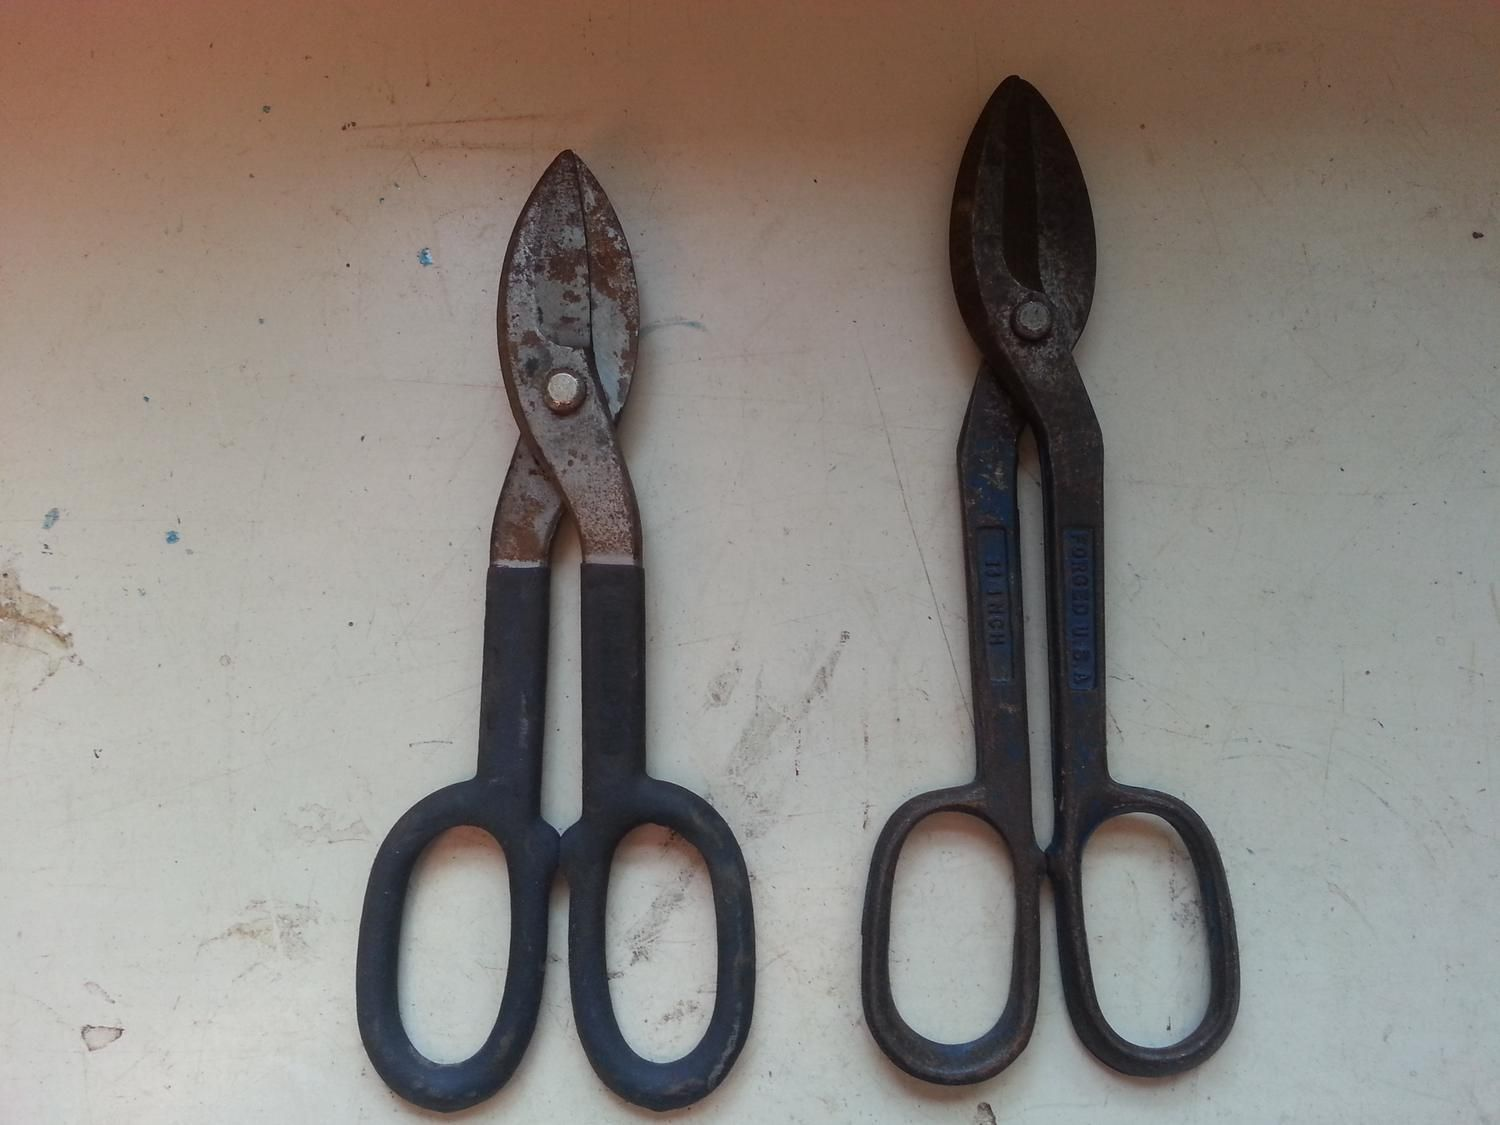 For Sale: Tin snip's REDUCED. - Used for cutting metal. $5.00  for both.